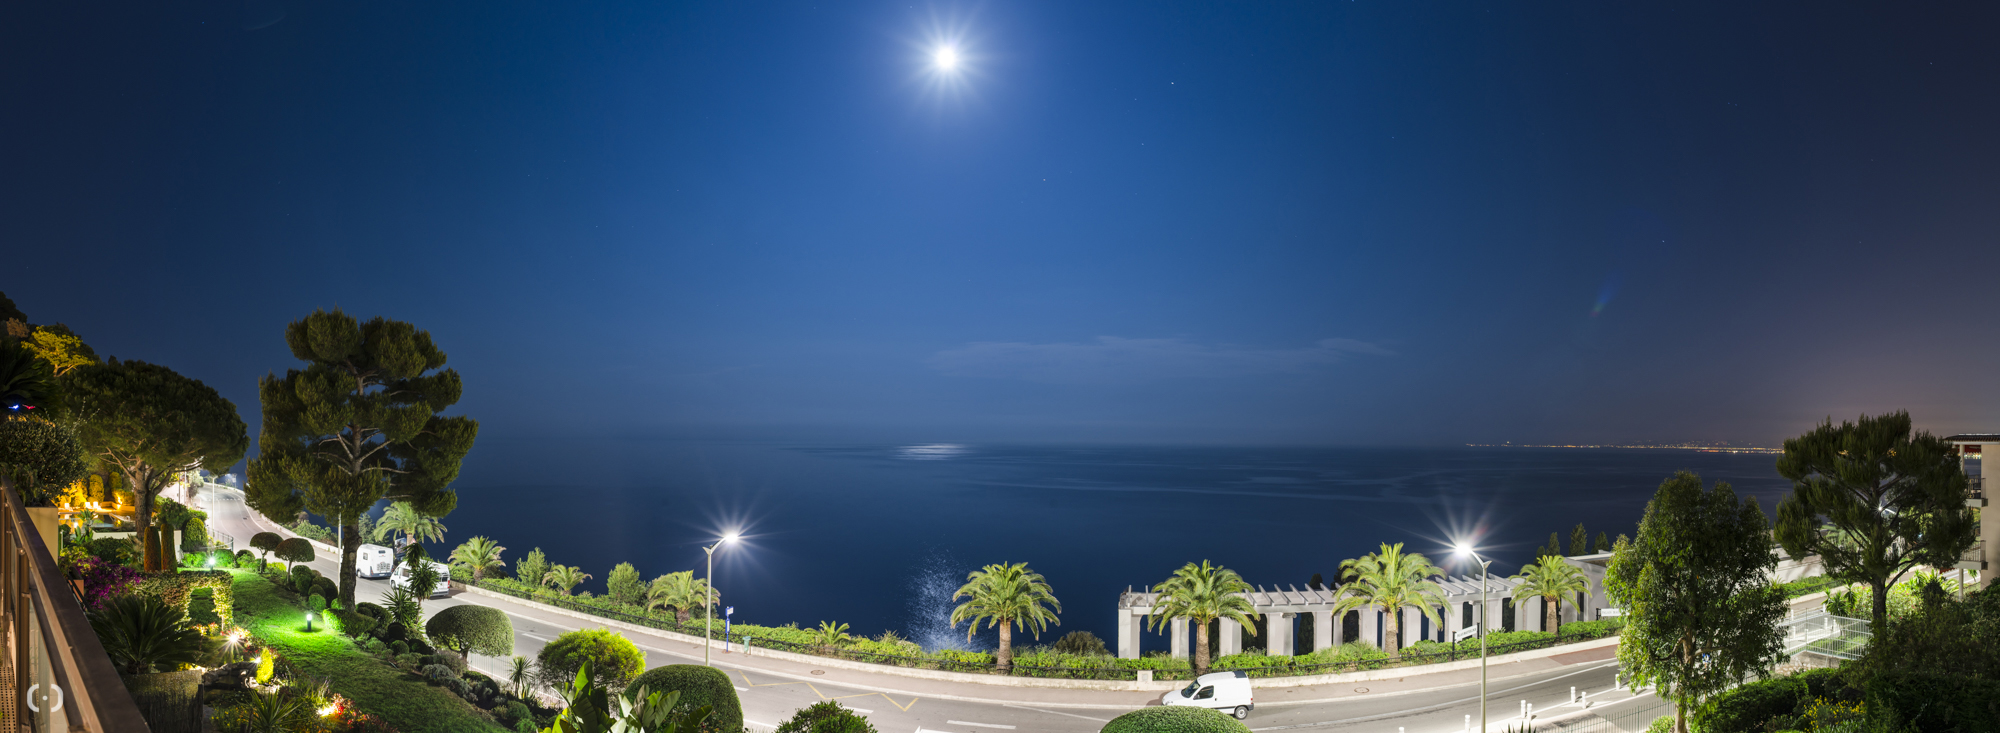 cap de nice night_cote d'azur_georgeye_web-2